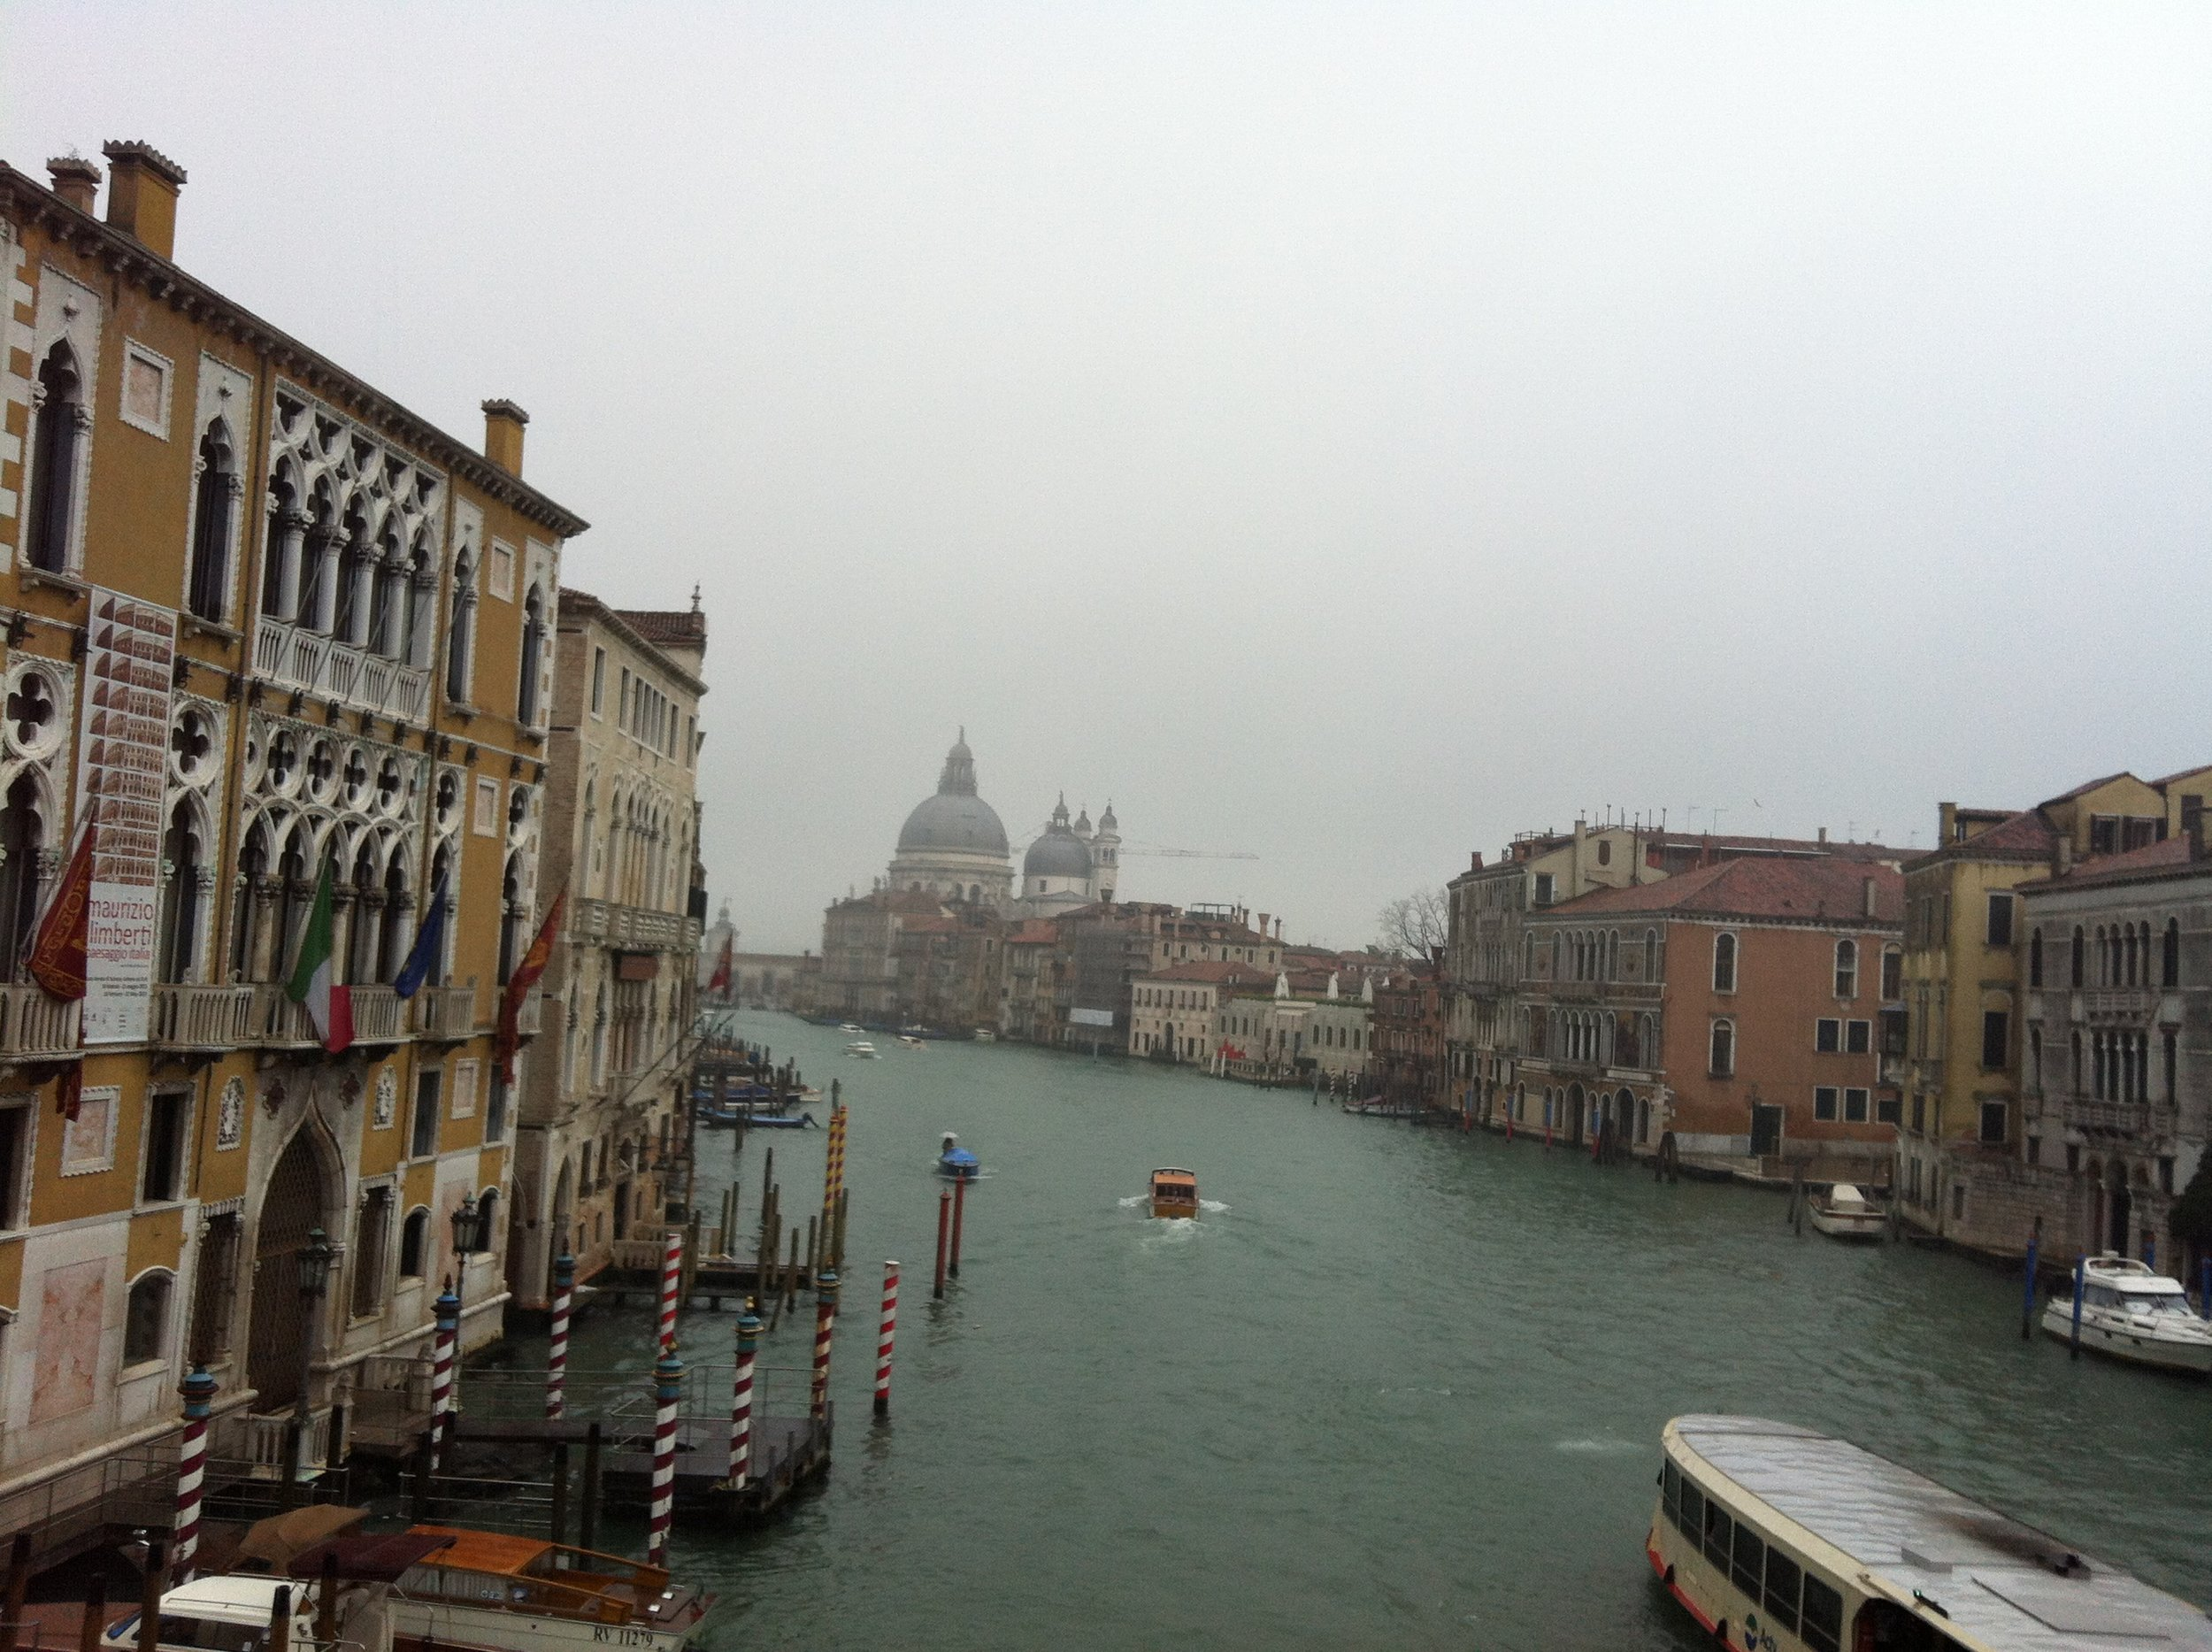 View of Grand Canal from Rialto